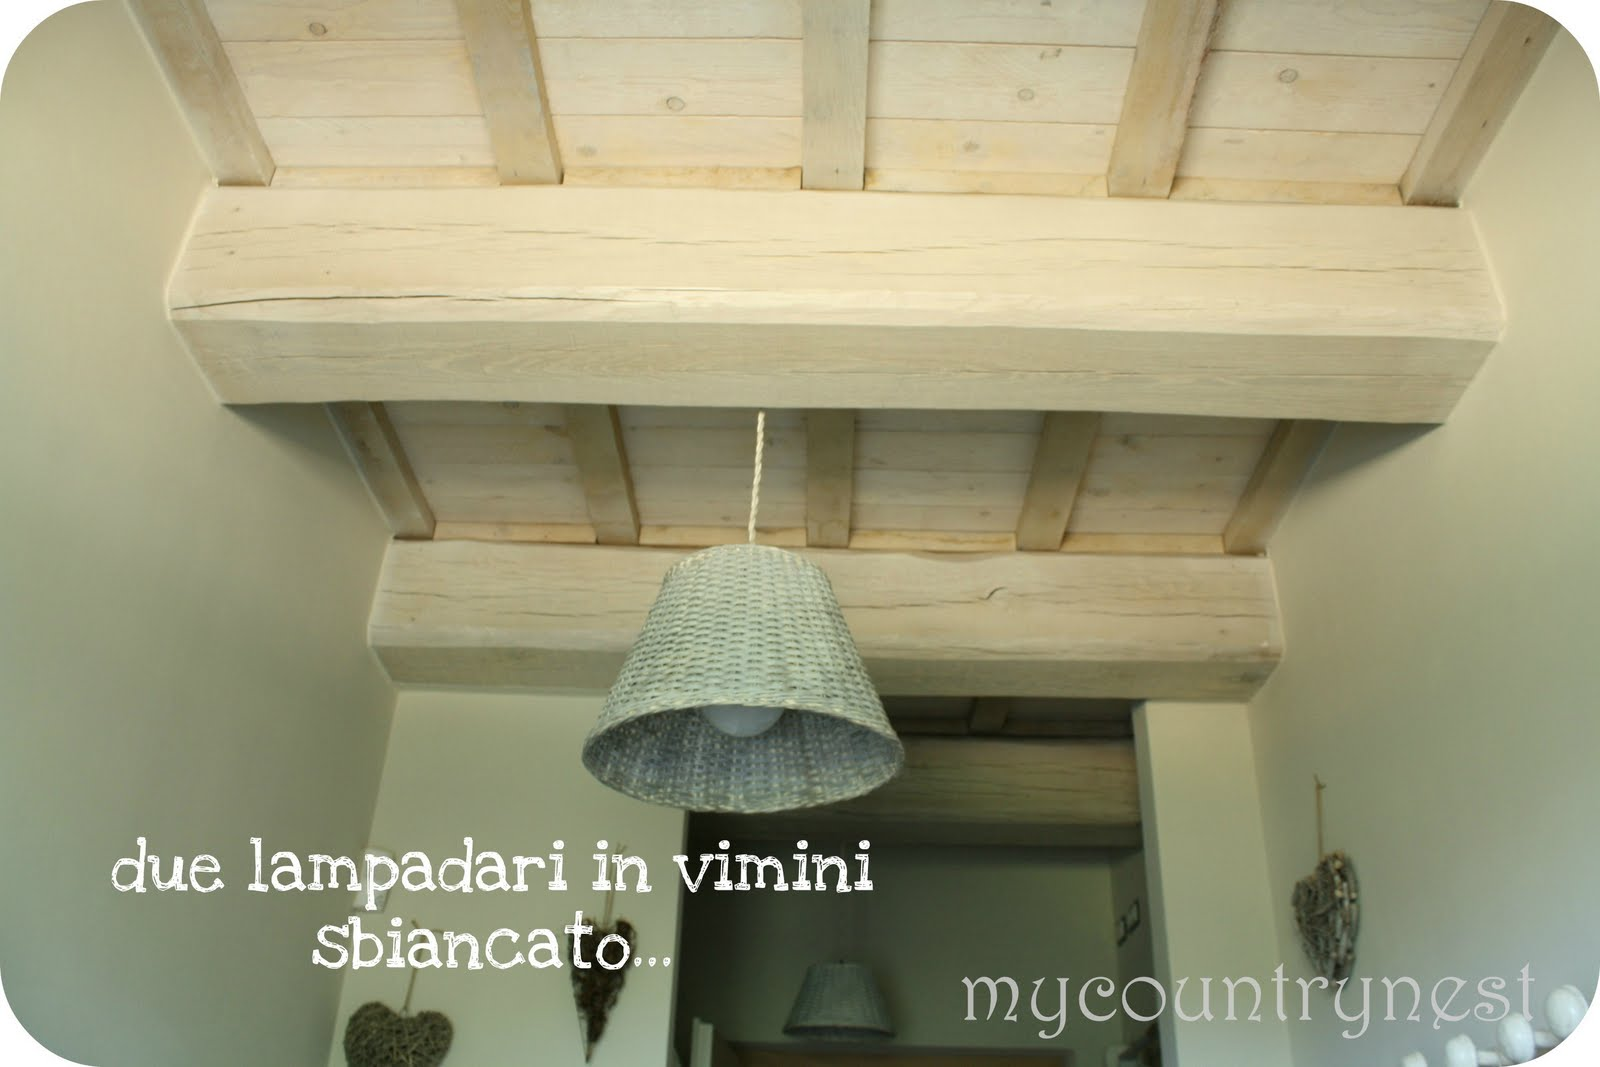 My country nest: maggio 2011